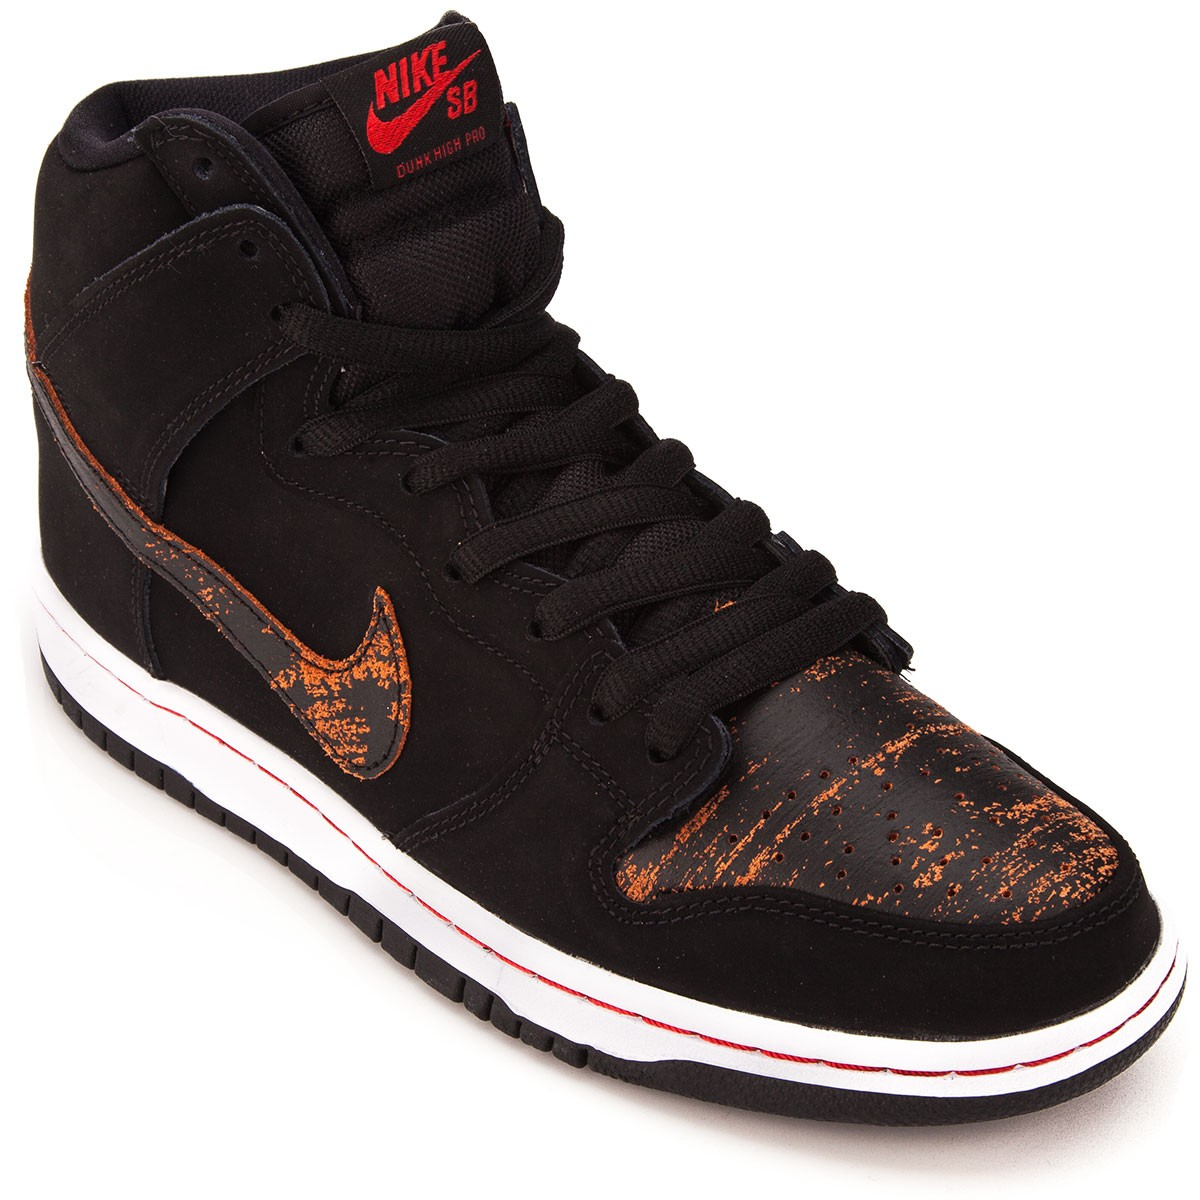 Nike SB Dunk High Pro Shoes - Black Black Red - 6.0 c00248a41